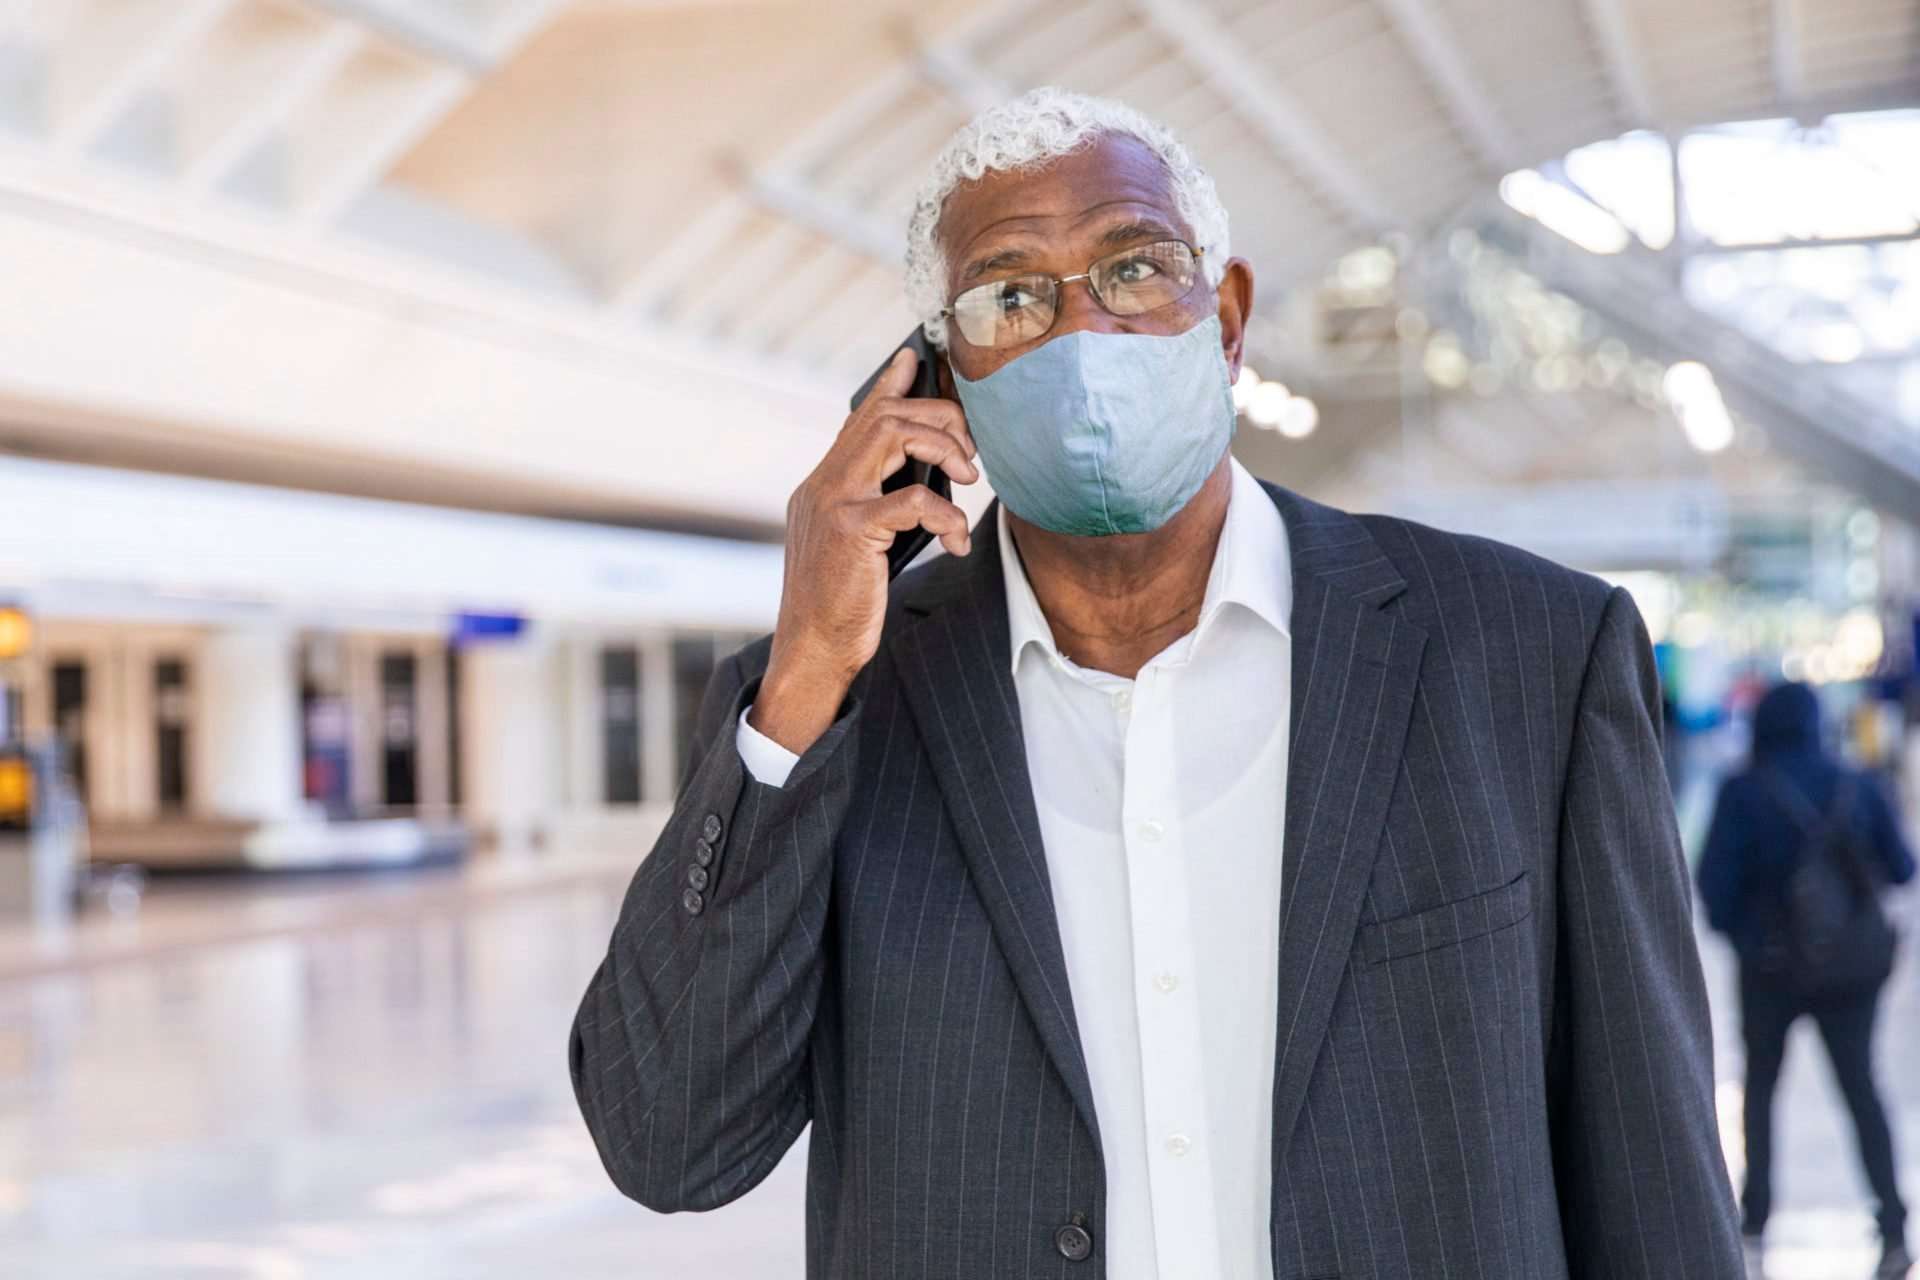 Senior Black Businessman on Phone at the Airport Wearing a Mask